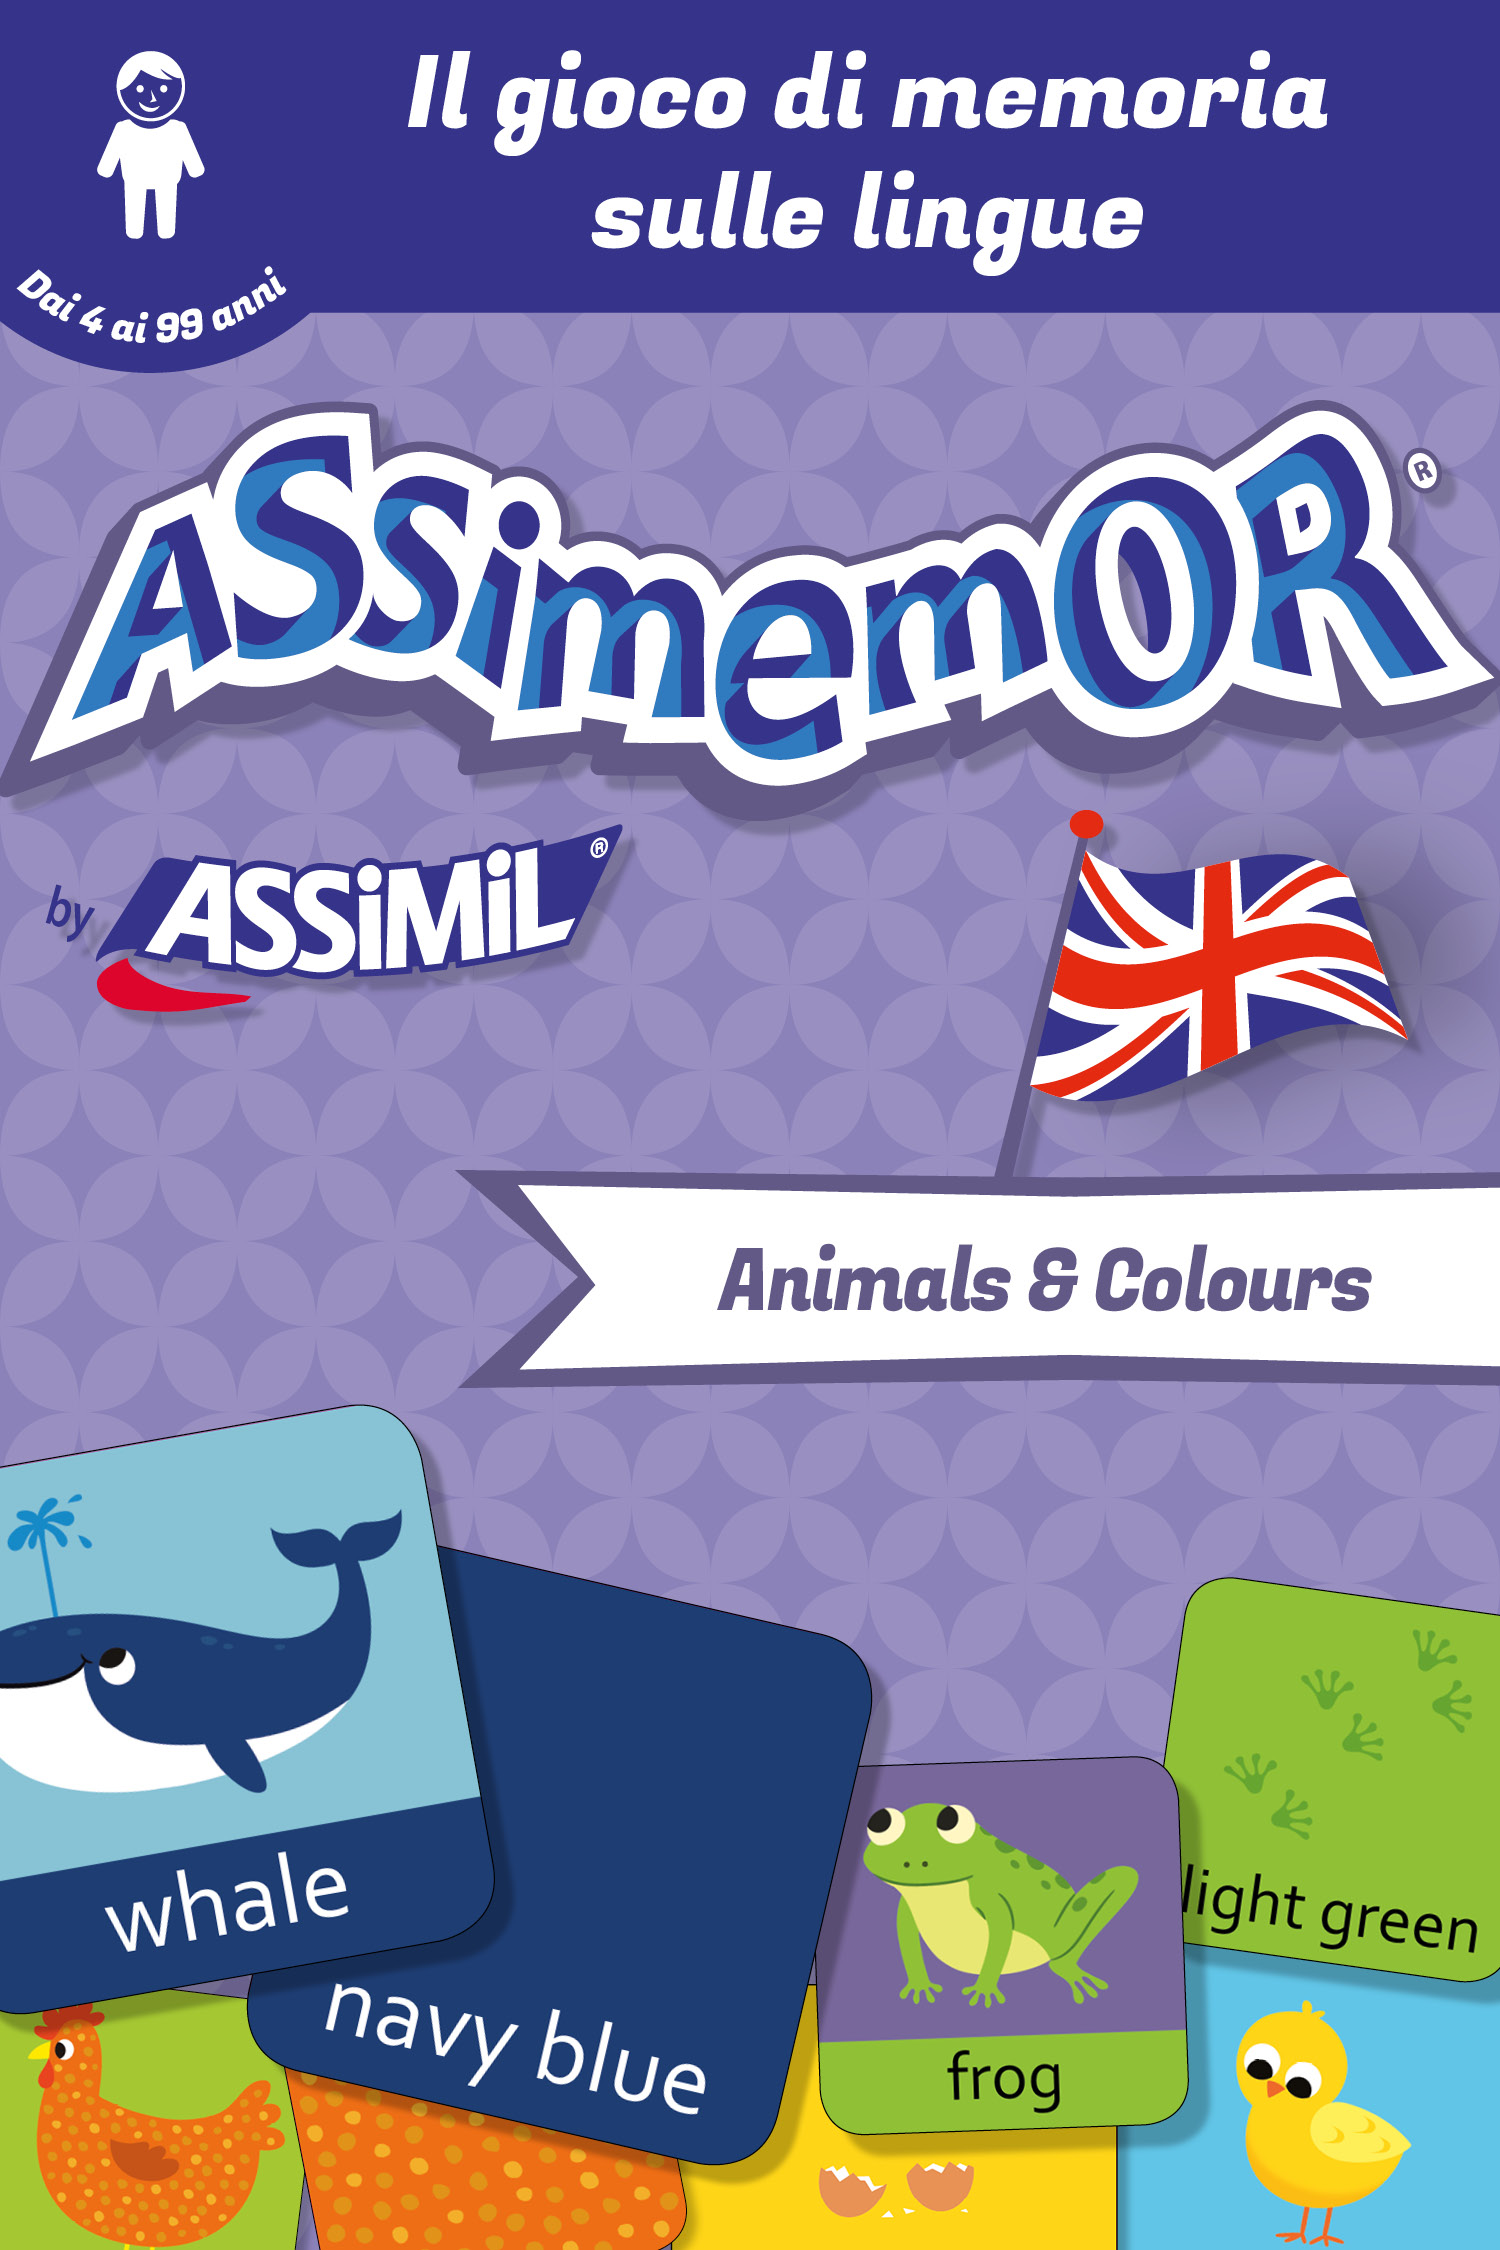 Assimemor - Le mie prime parole in inglese: Animals and Colours